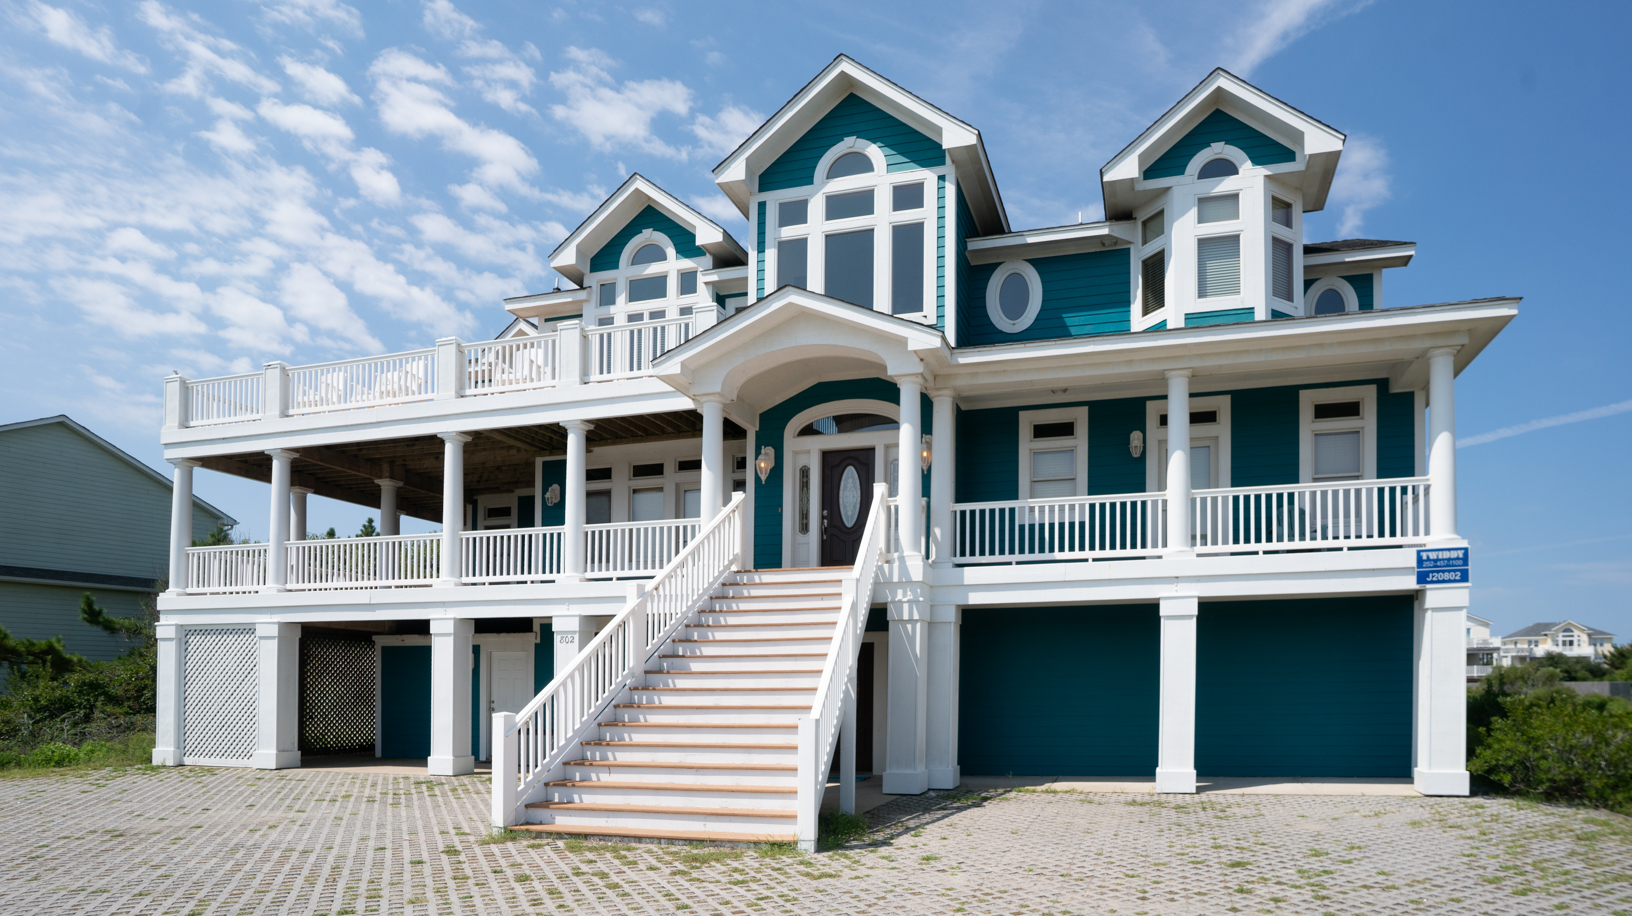 station obx photos outer house banks rentals island one cottage oceanfront rental property pine